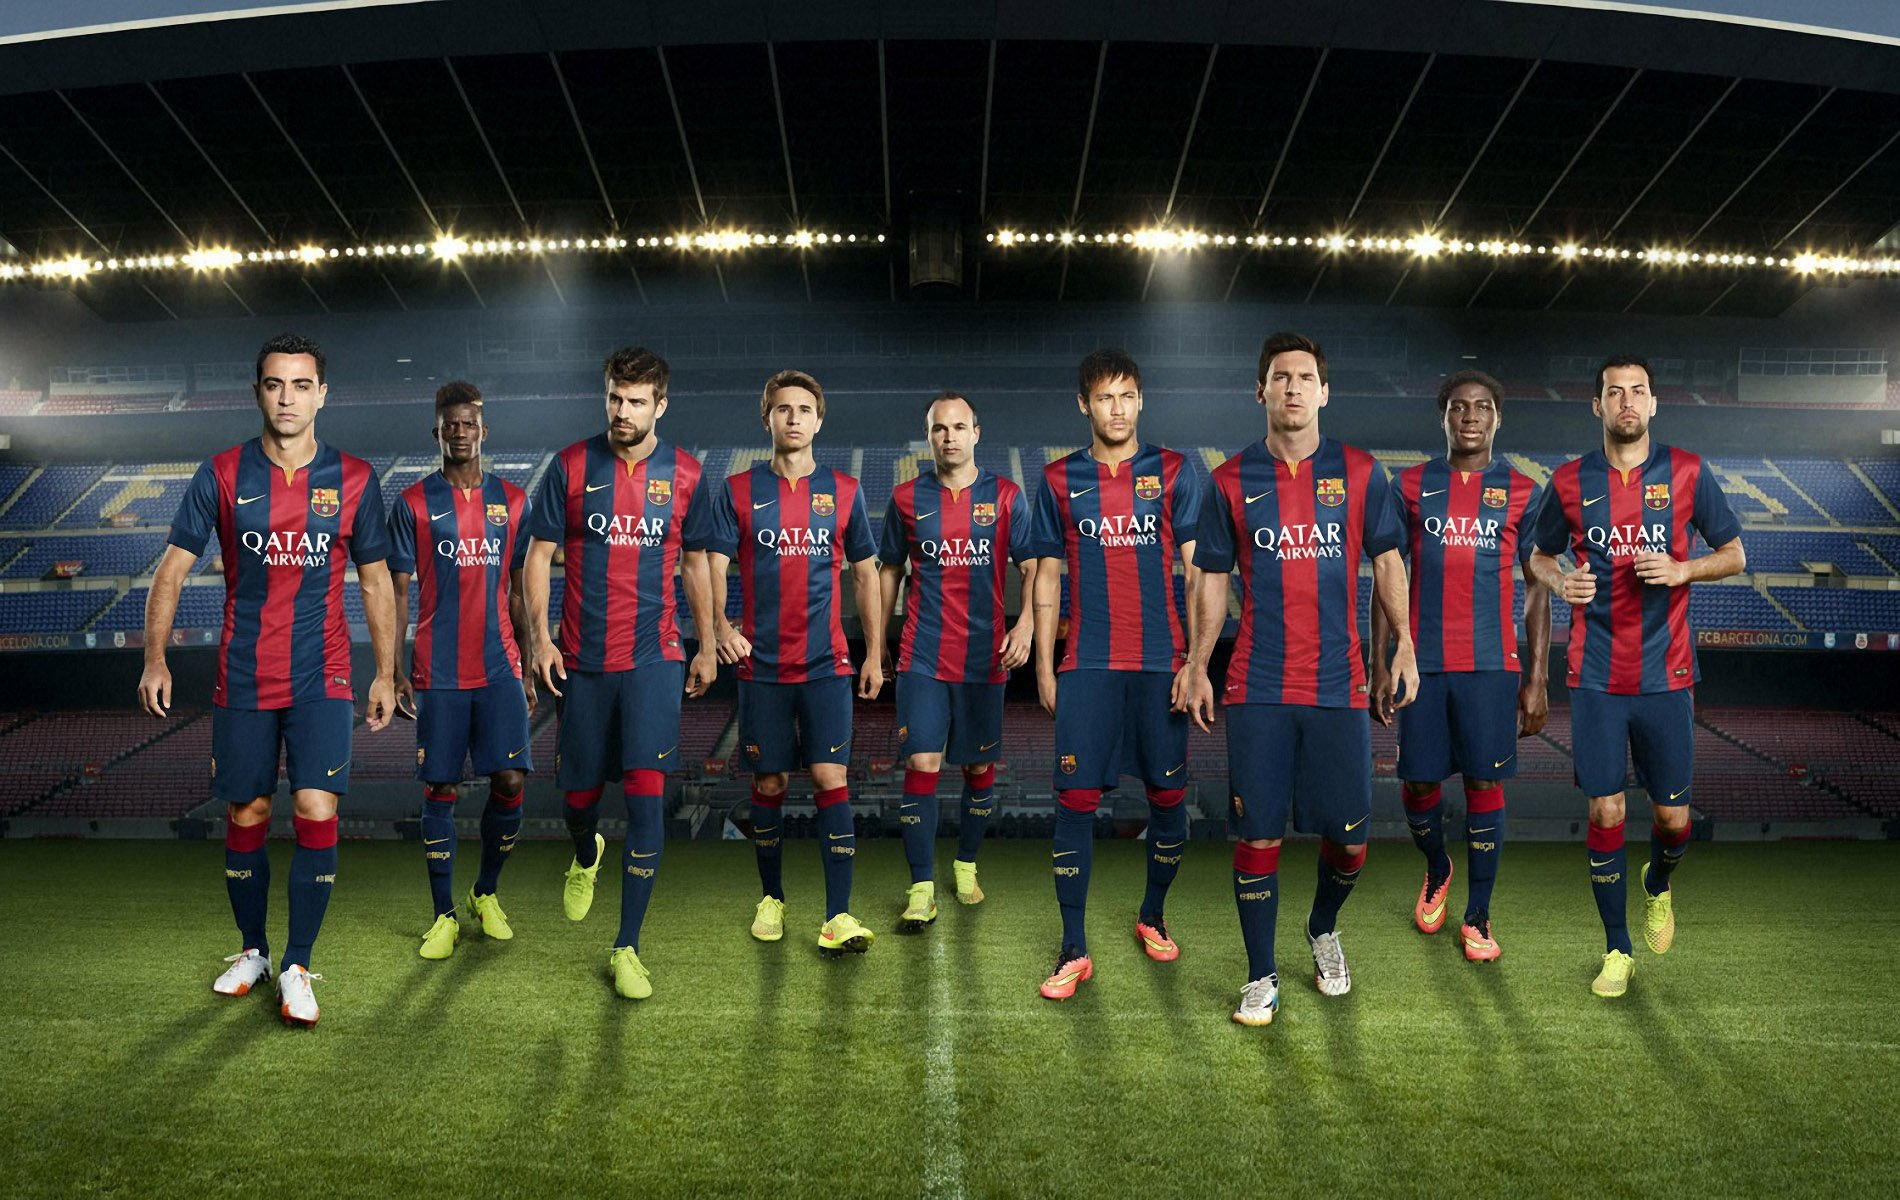 2015 FC Barcelona Wallpapers Hd The Art Mad Wallpapers 1900x1200